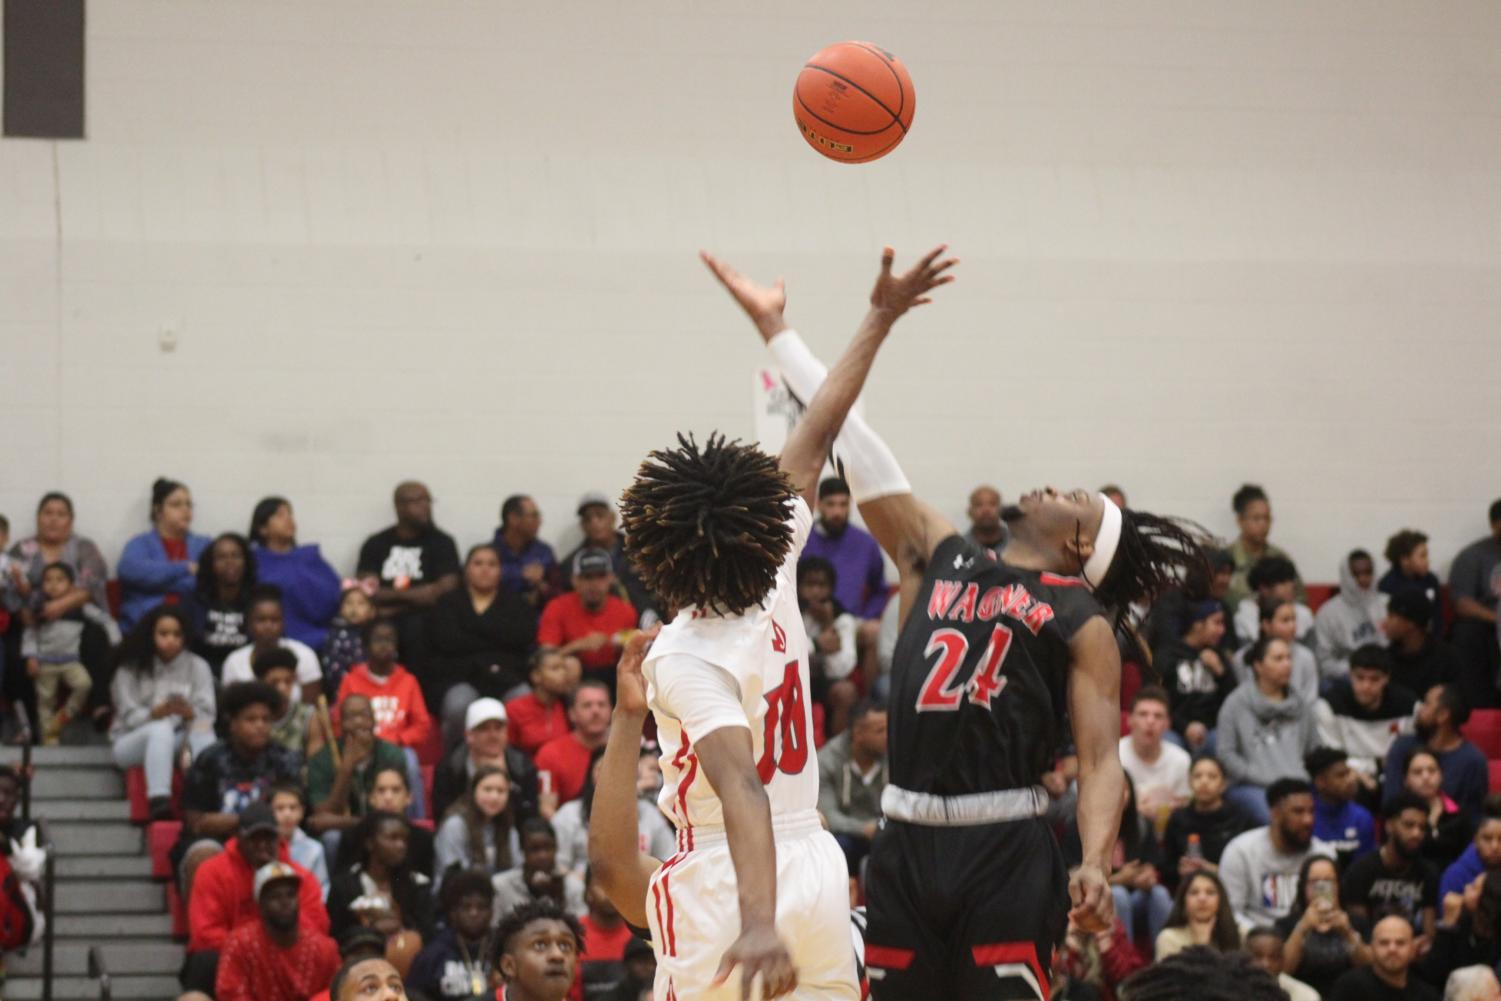 Senior Ja'Kolby Cornelius and Wagner's Journee Philips tip off at the first boys basketball game of the season. The Rockets fell to the Thunderbirds, 57-75.